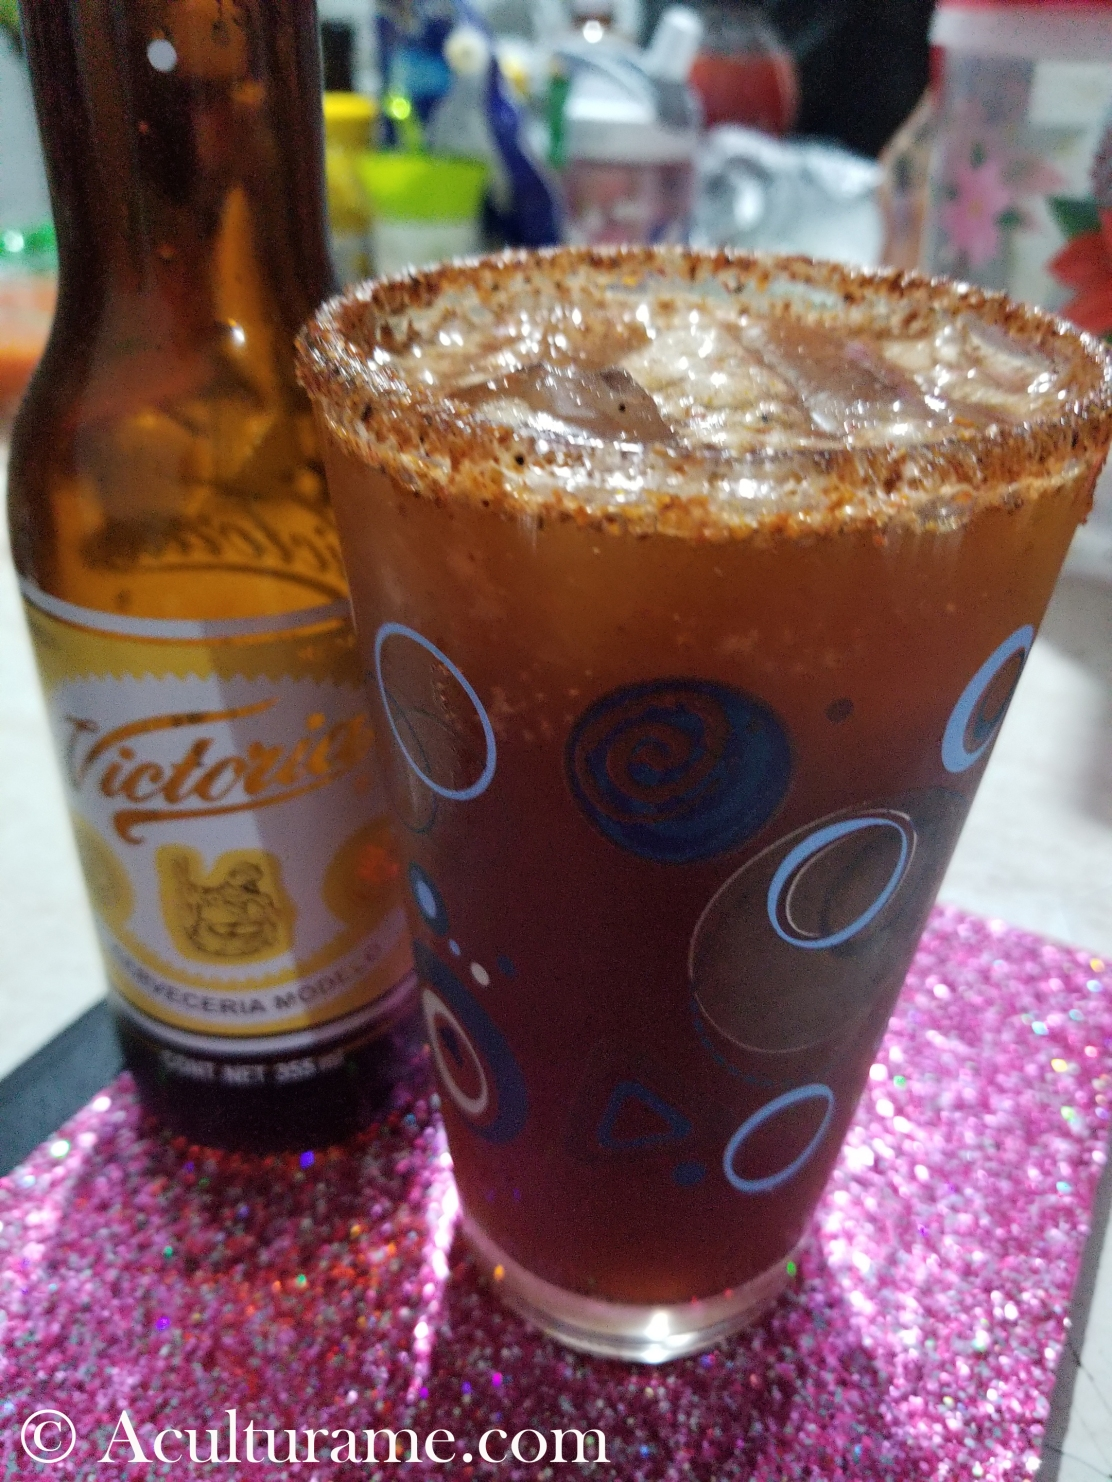 A Michelada is a popular drink from Mexico, usually enjoyed with good friends.